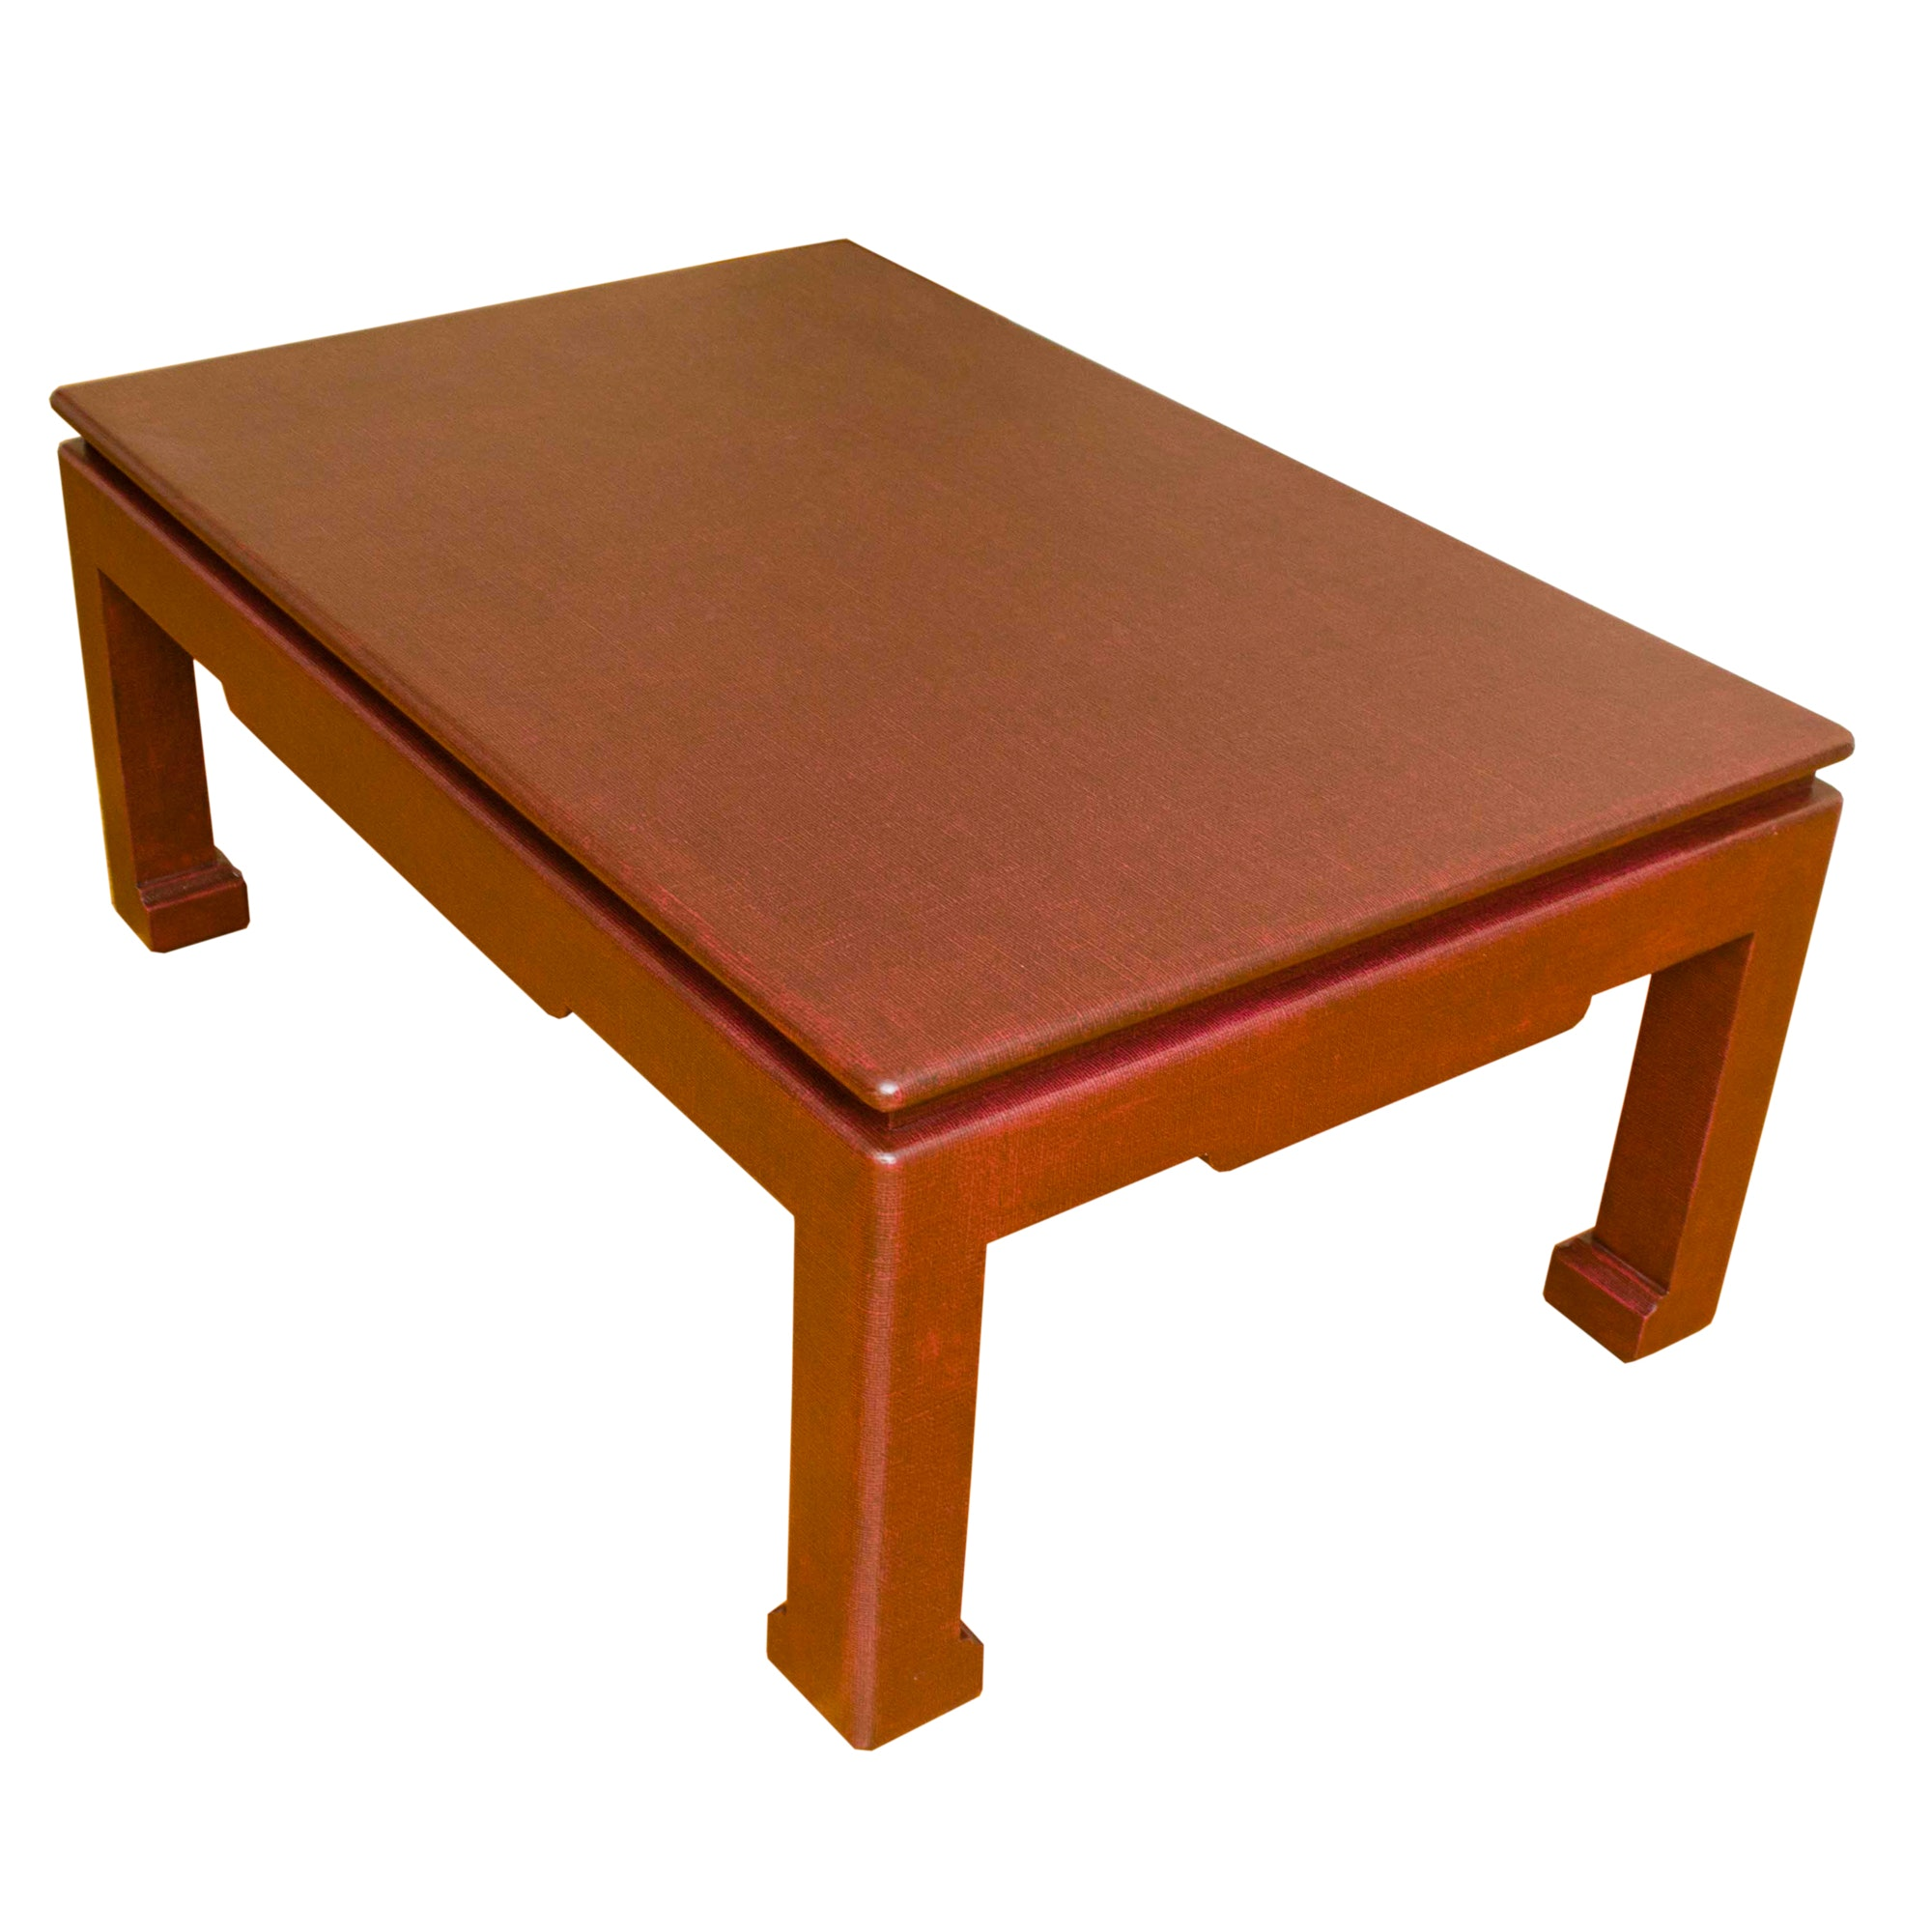 Contemporary Asian Inspired Coffee Table